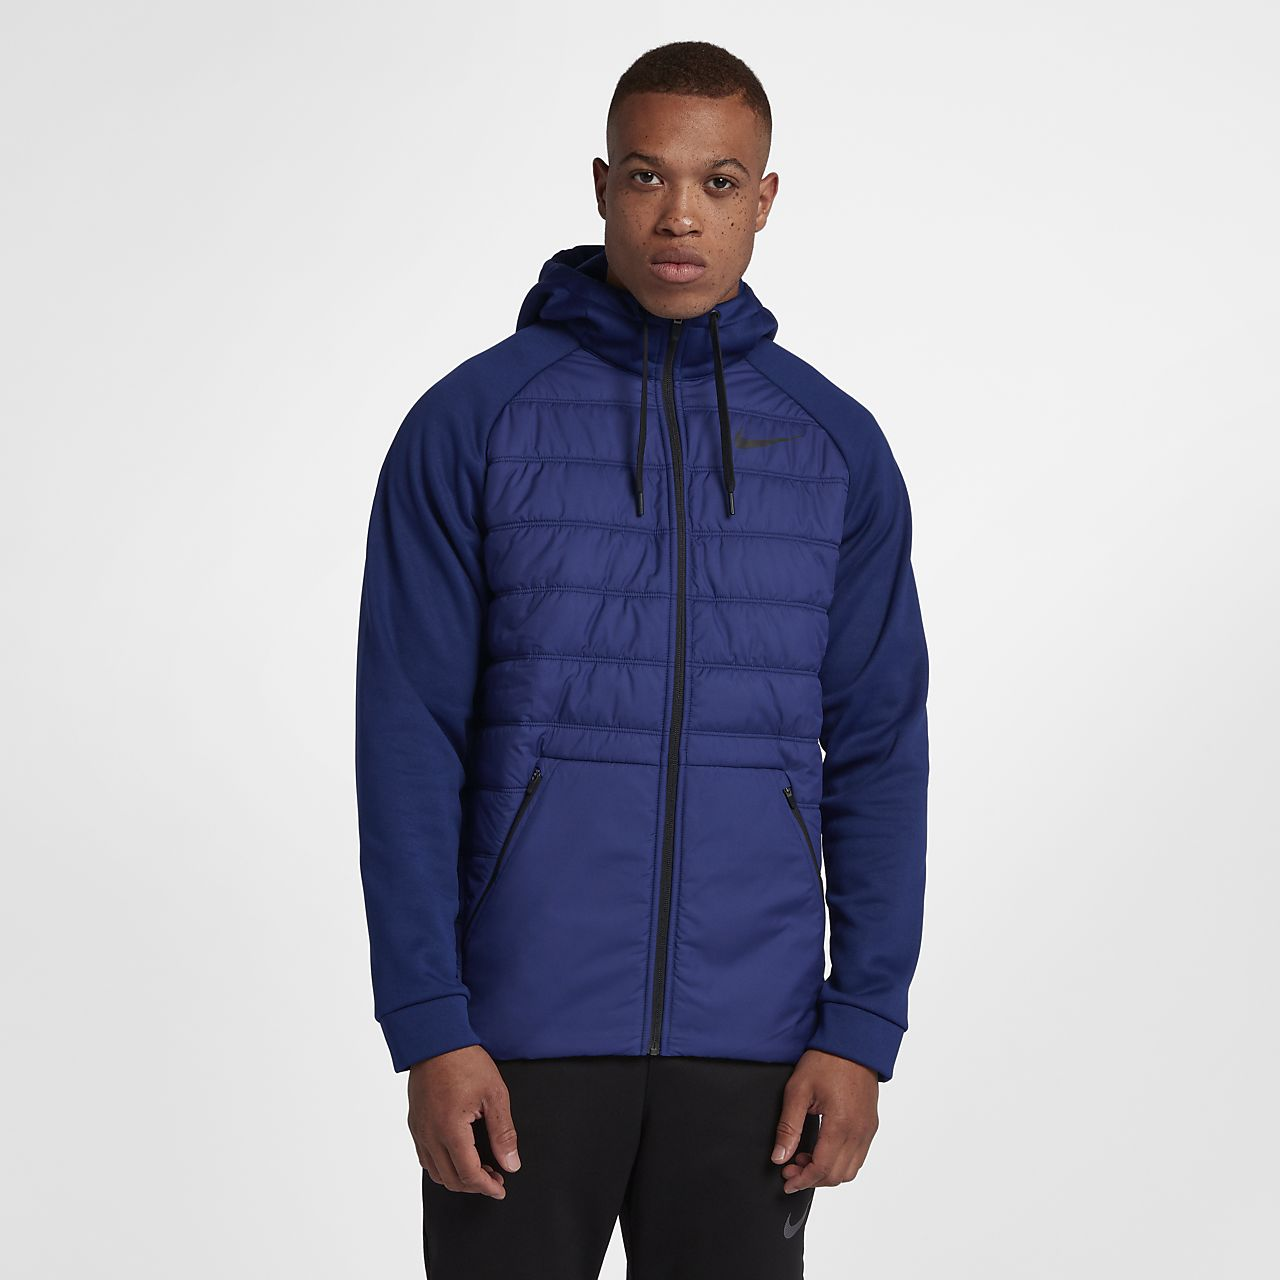 e918735c9fe7 Nike Therma Winterized Men s Full-Zip Hoodie. Nike.com